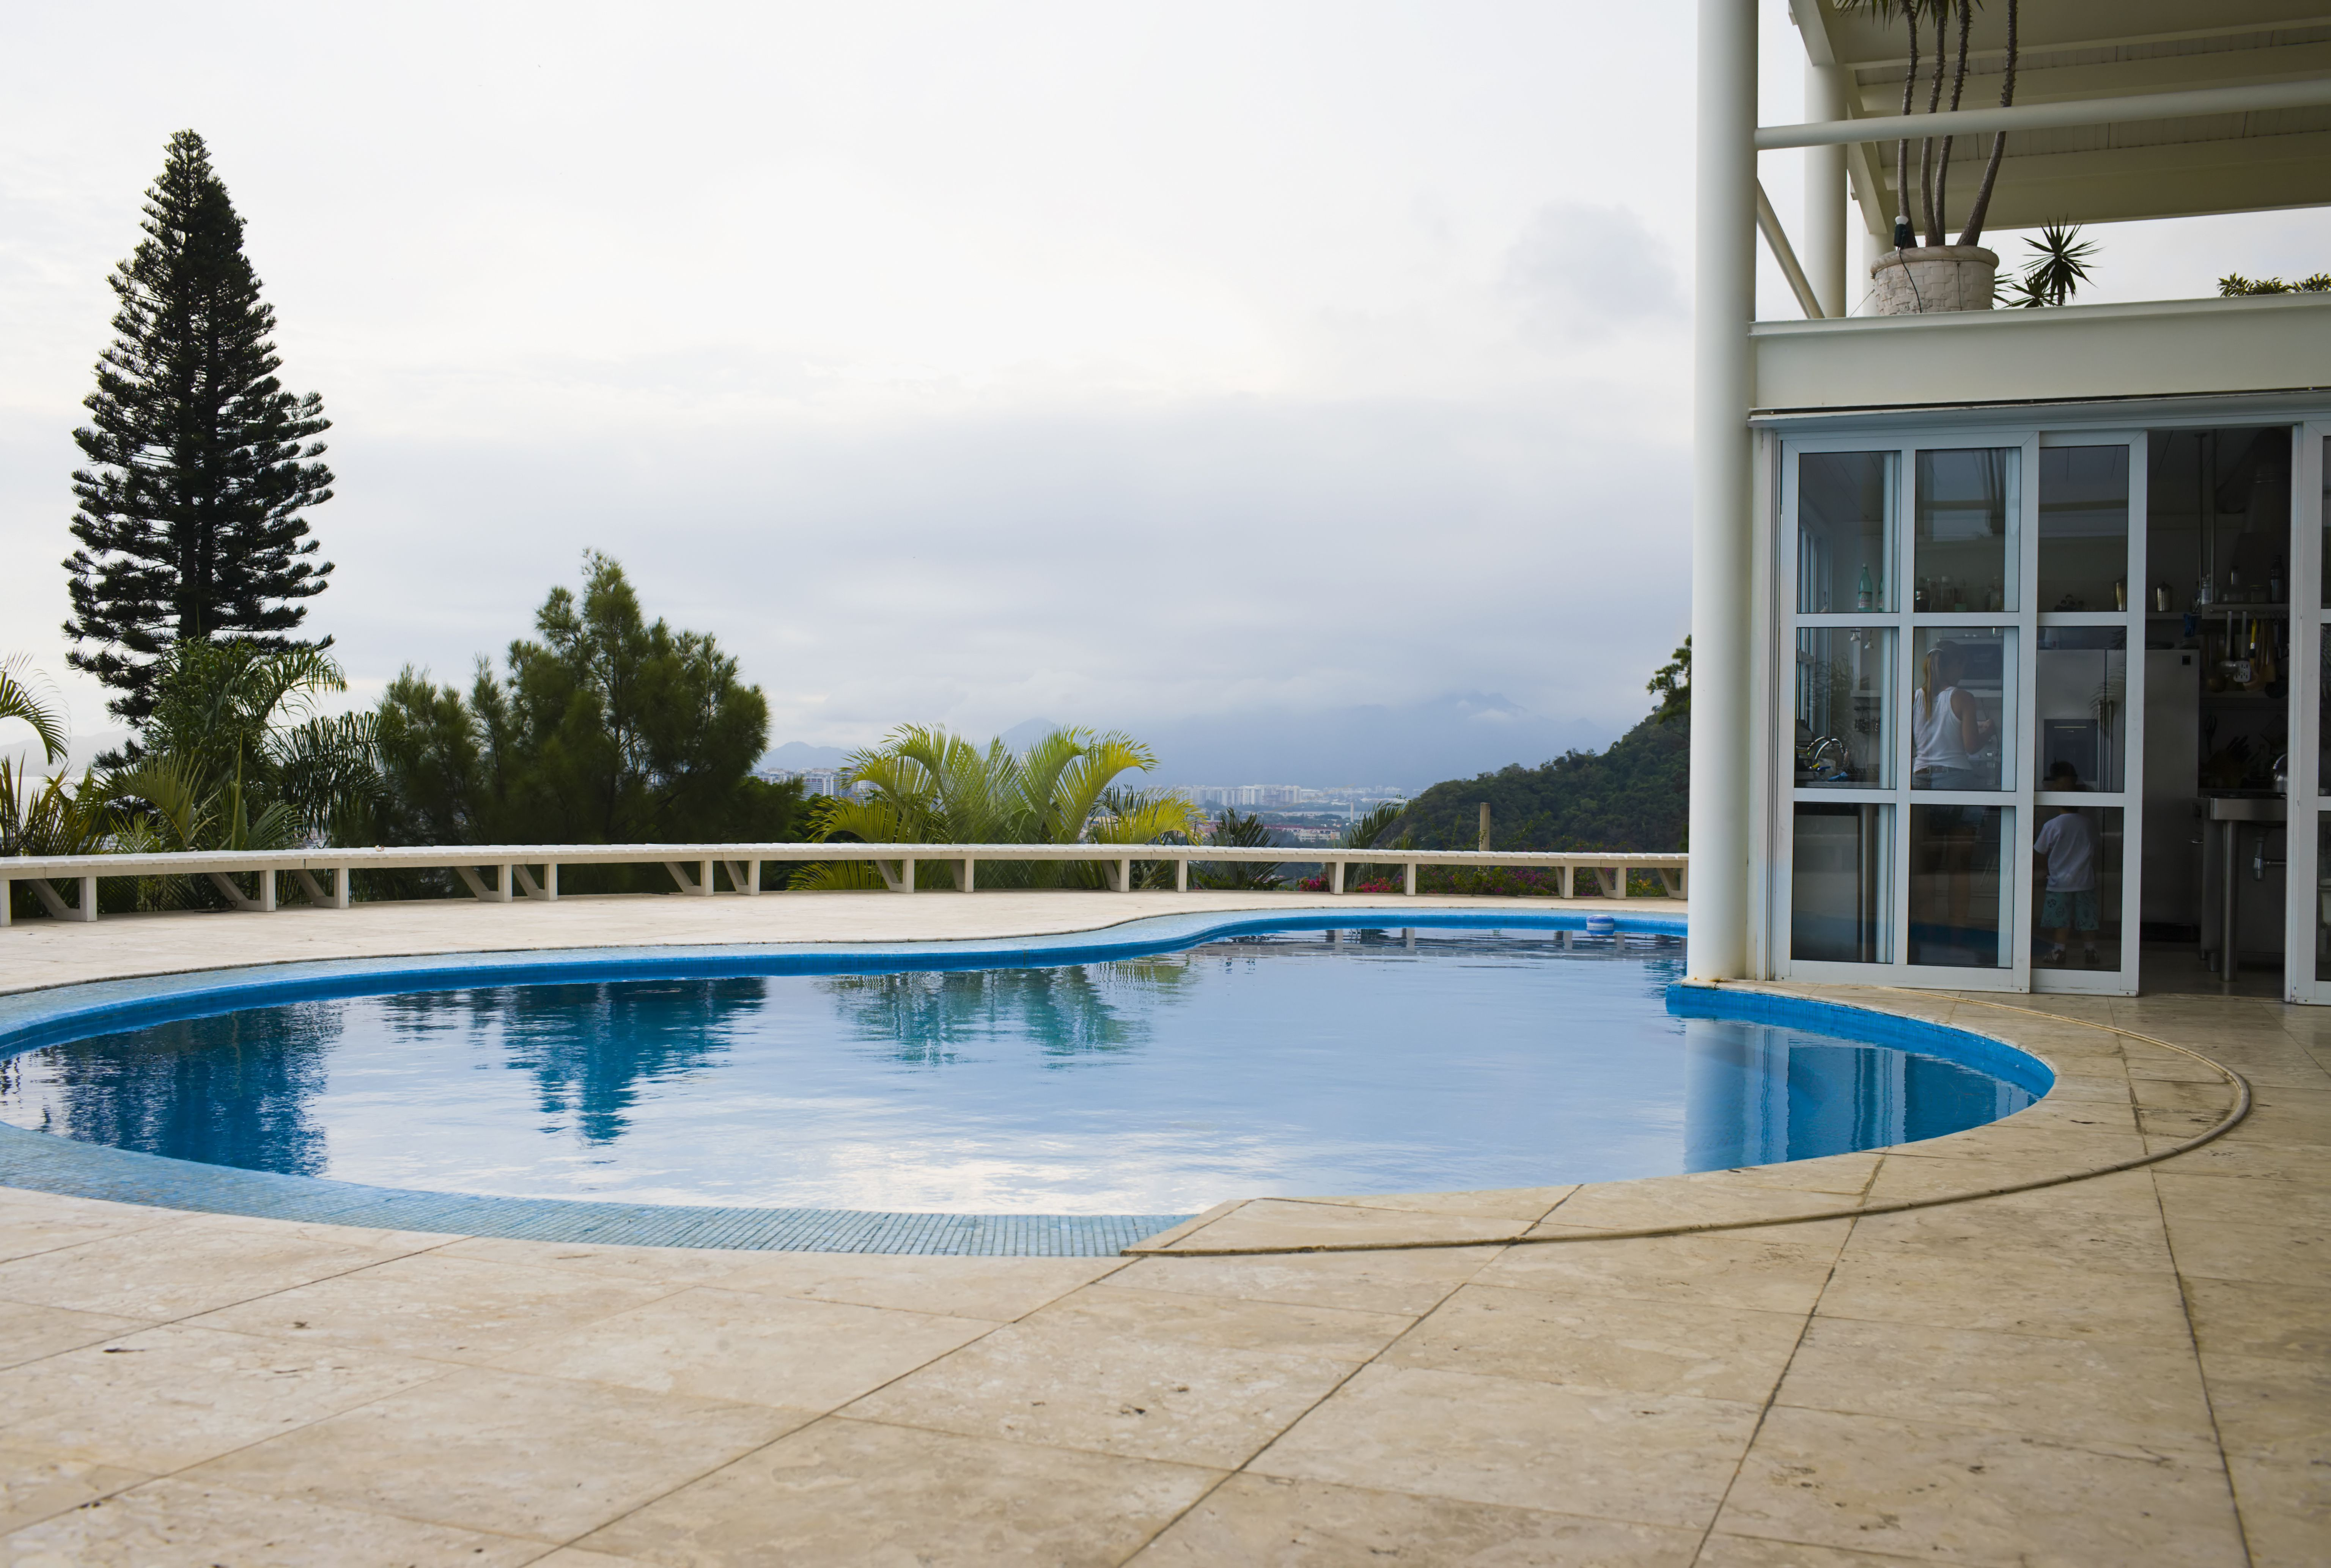 Modern house by Oscar Niemeyer, with glass, stone, and swimming pool